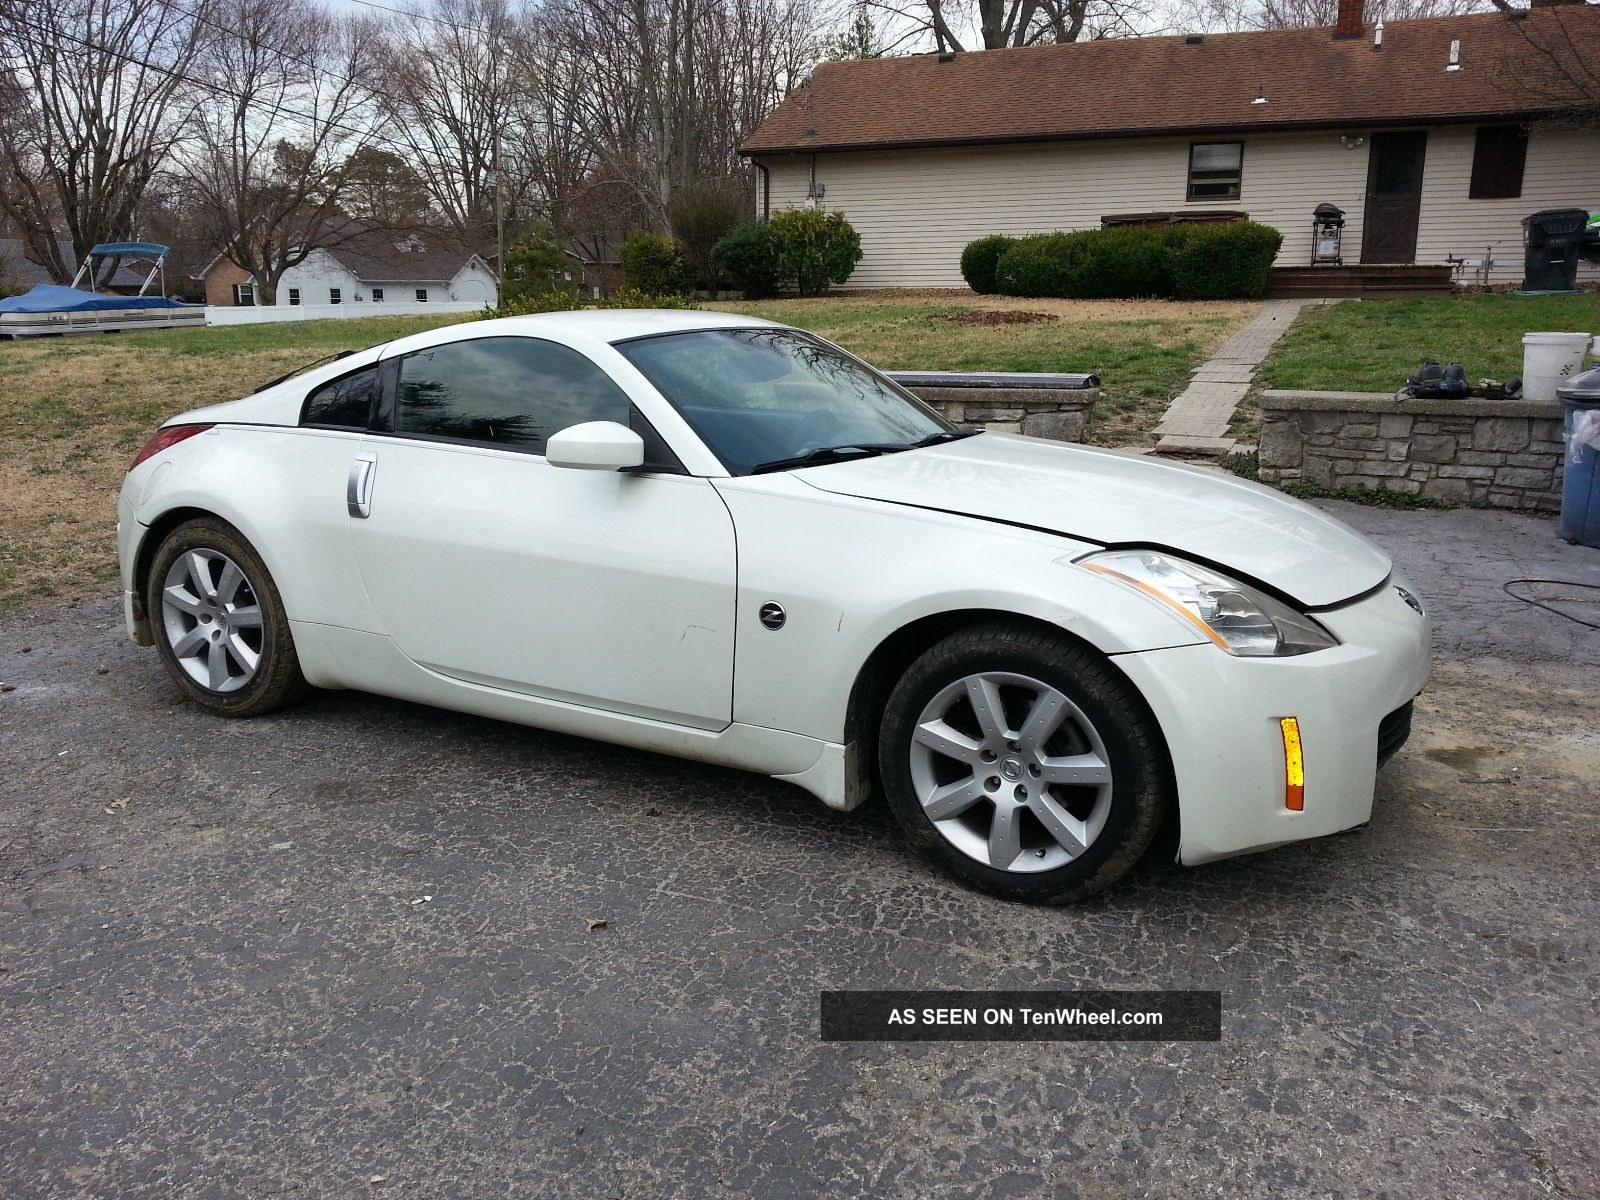 2003 nissan 350z performance coupe 2 door 3 5l minor damage clear title. Black Bedroom Furniture Sets. Home Design Ideas